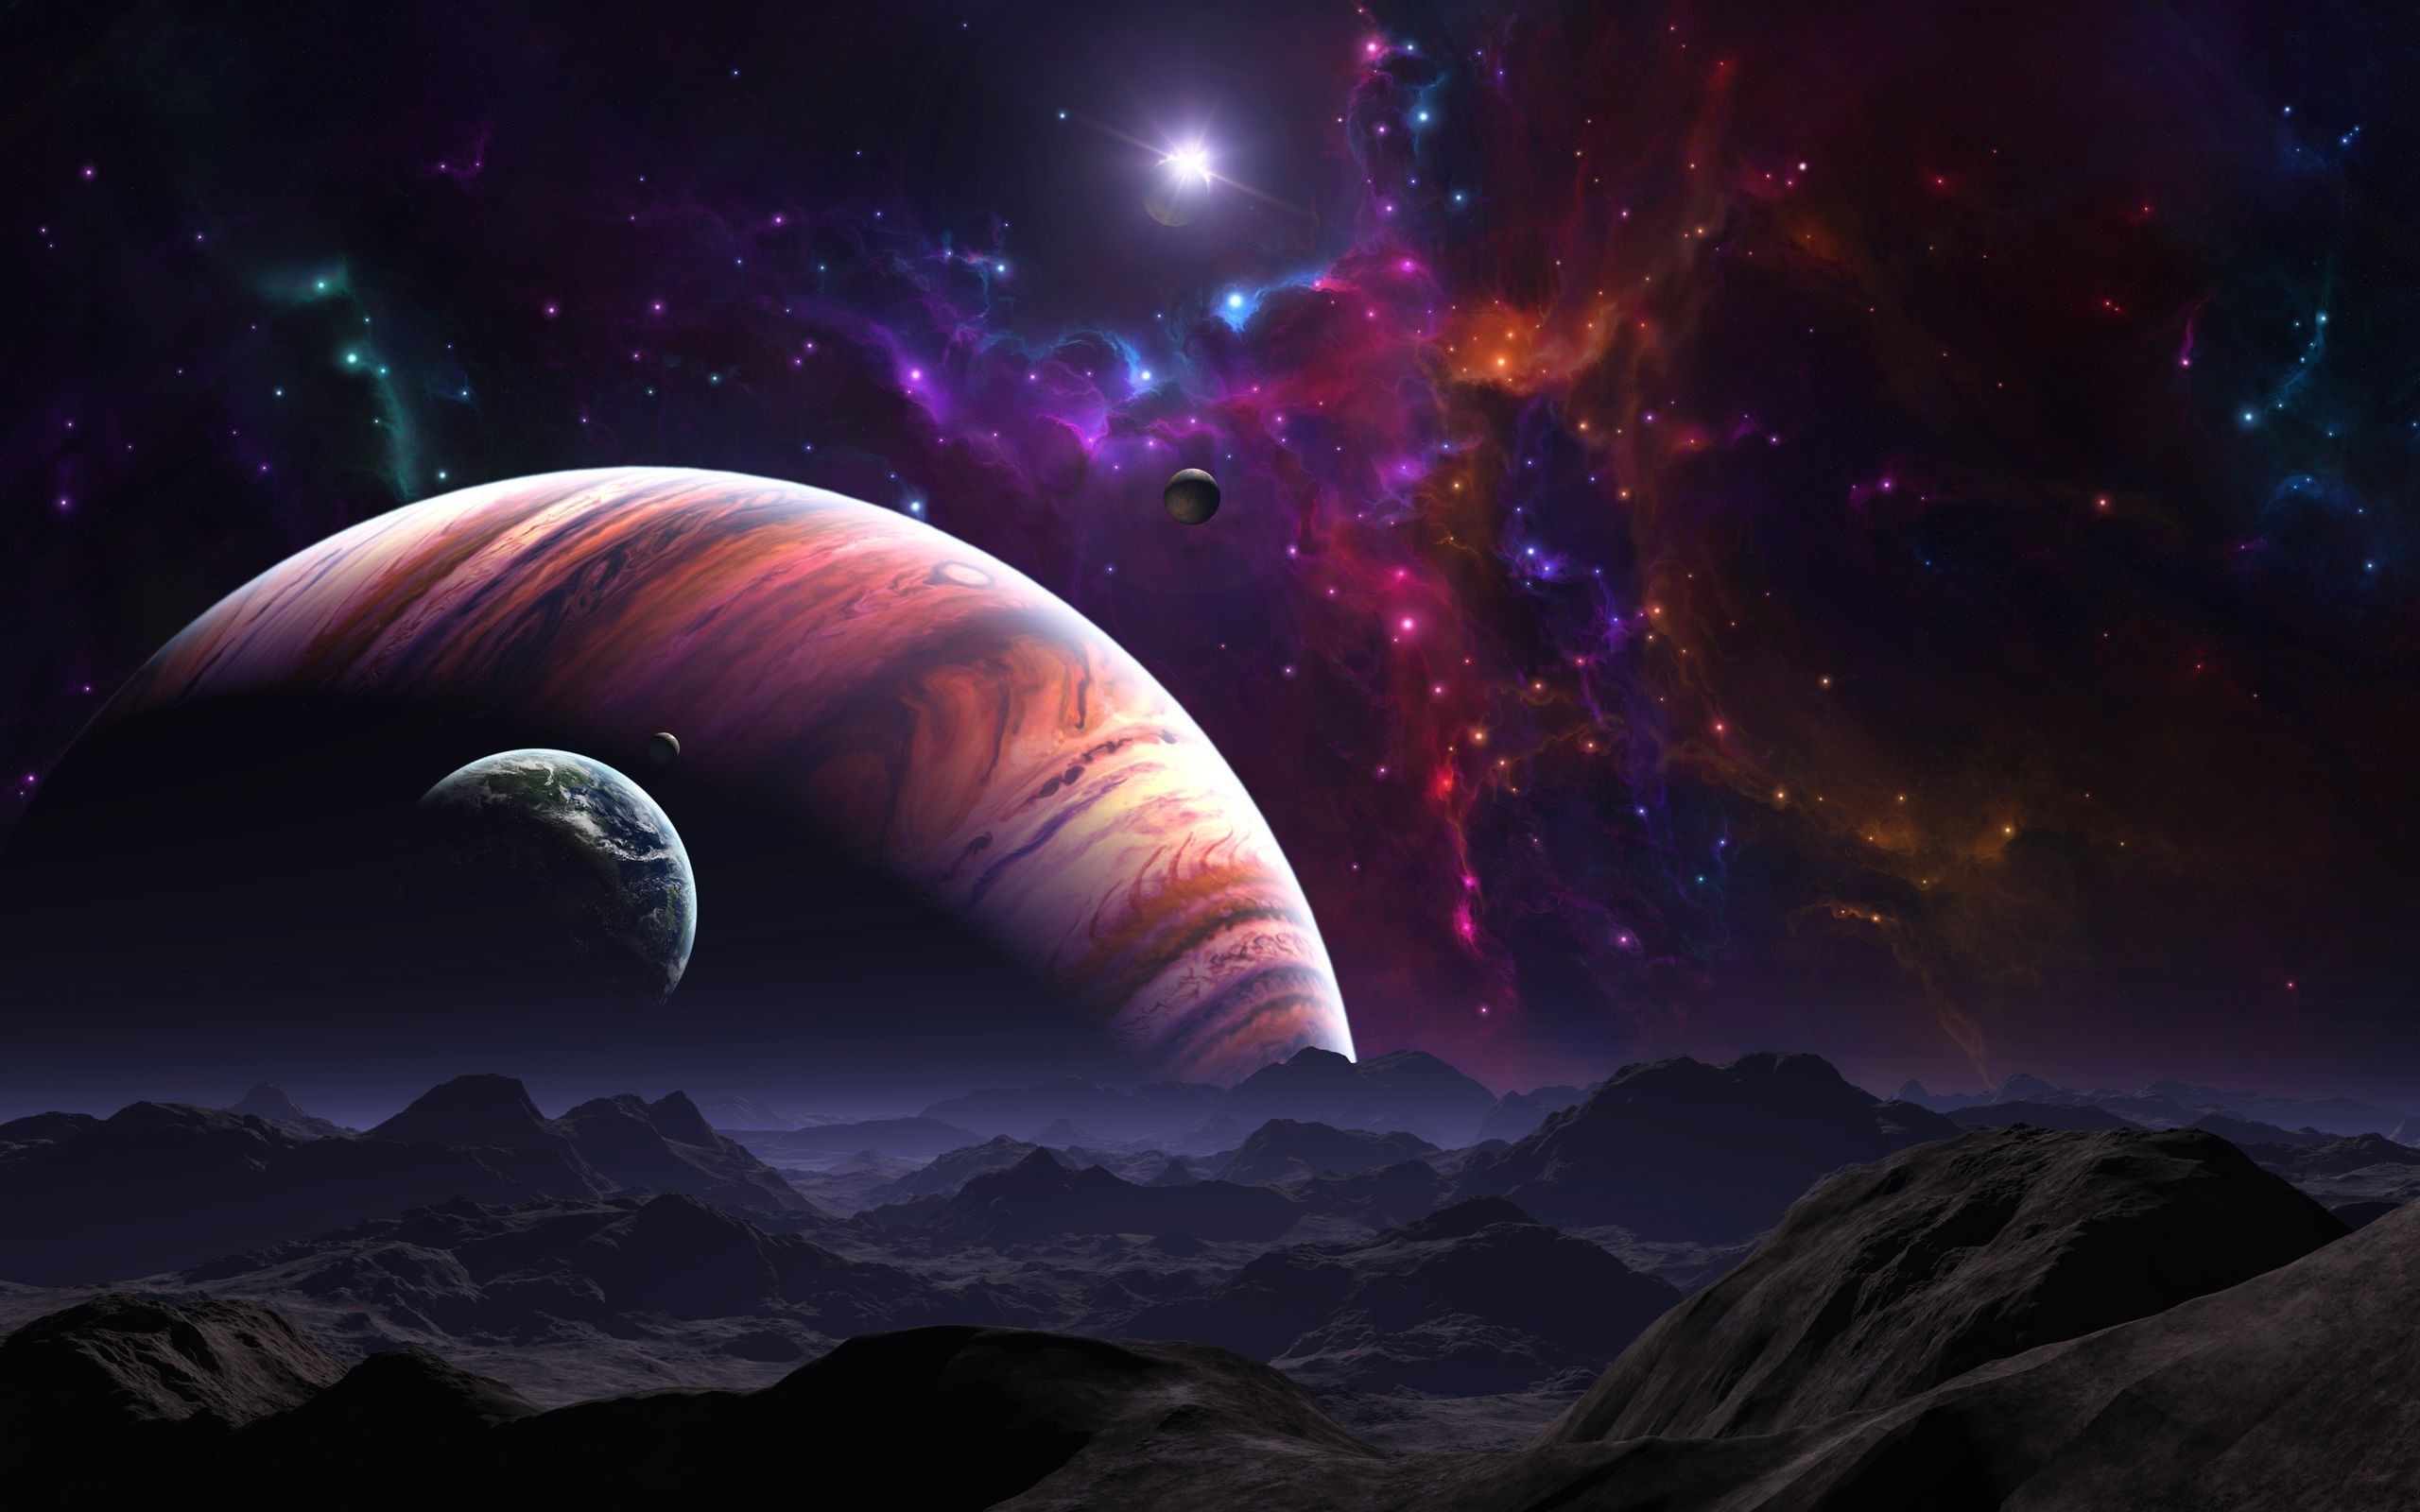 wallpaper space outer background cool images 2560x1600